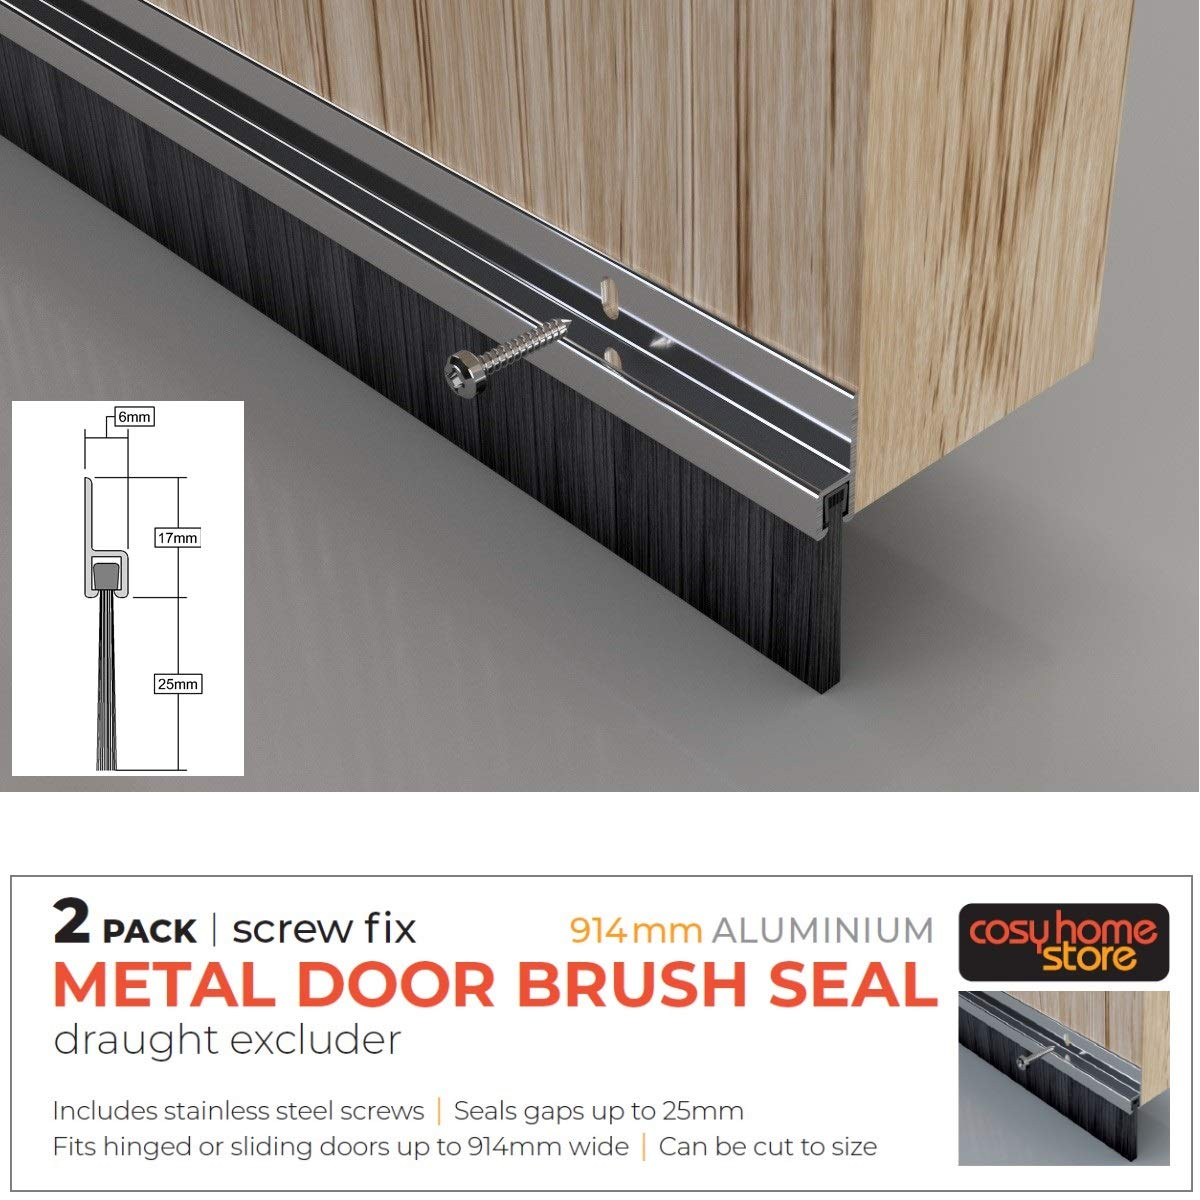 Heavy Duty Brush Seal Draft Excluder 914mm ALUMINIO x 2 Pack: Amazon.es: Bricolaje y herramientas